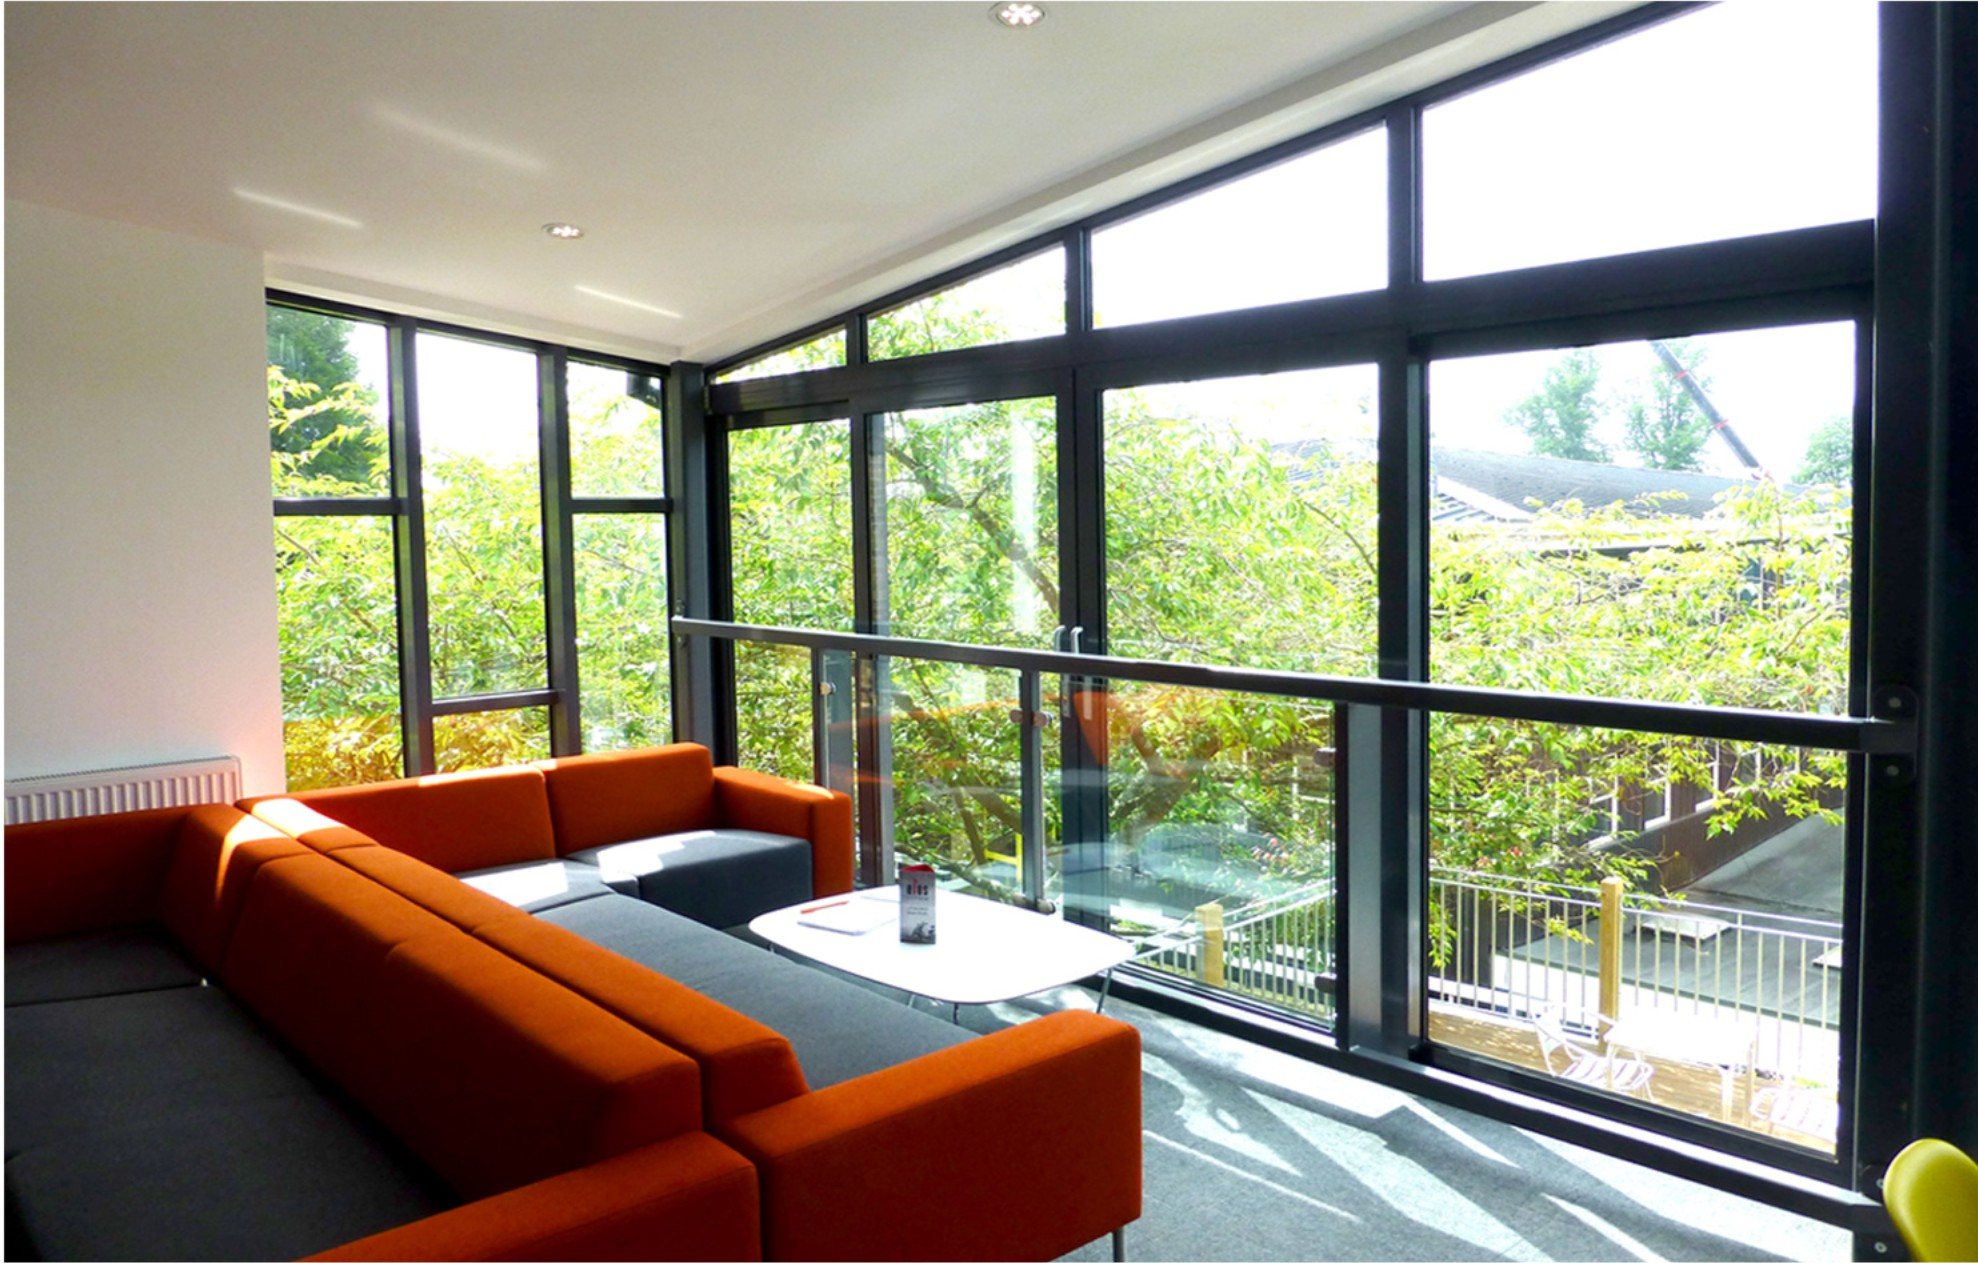 learning cafe university of winchester studio four architects. Black Bedroom Furniture Sets. Home Design Ideas